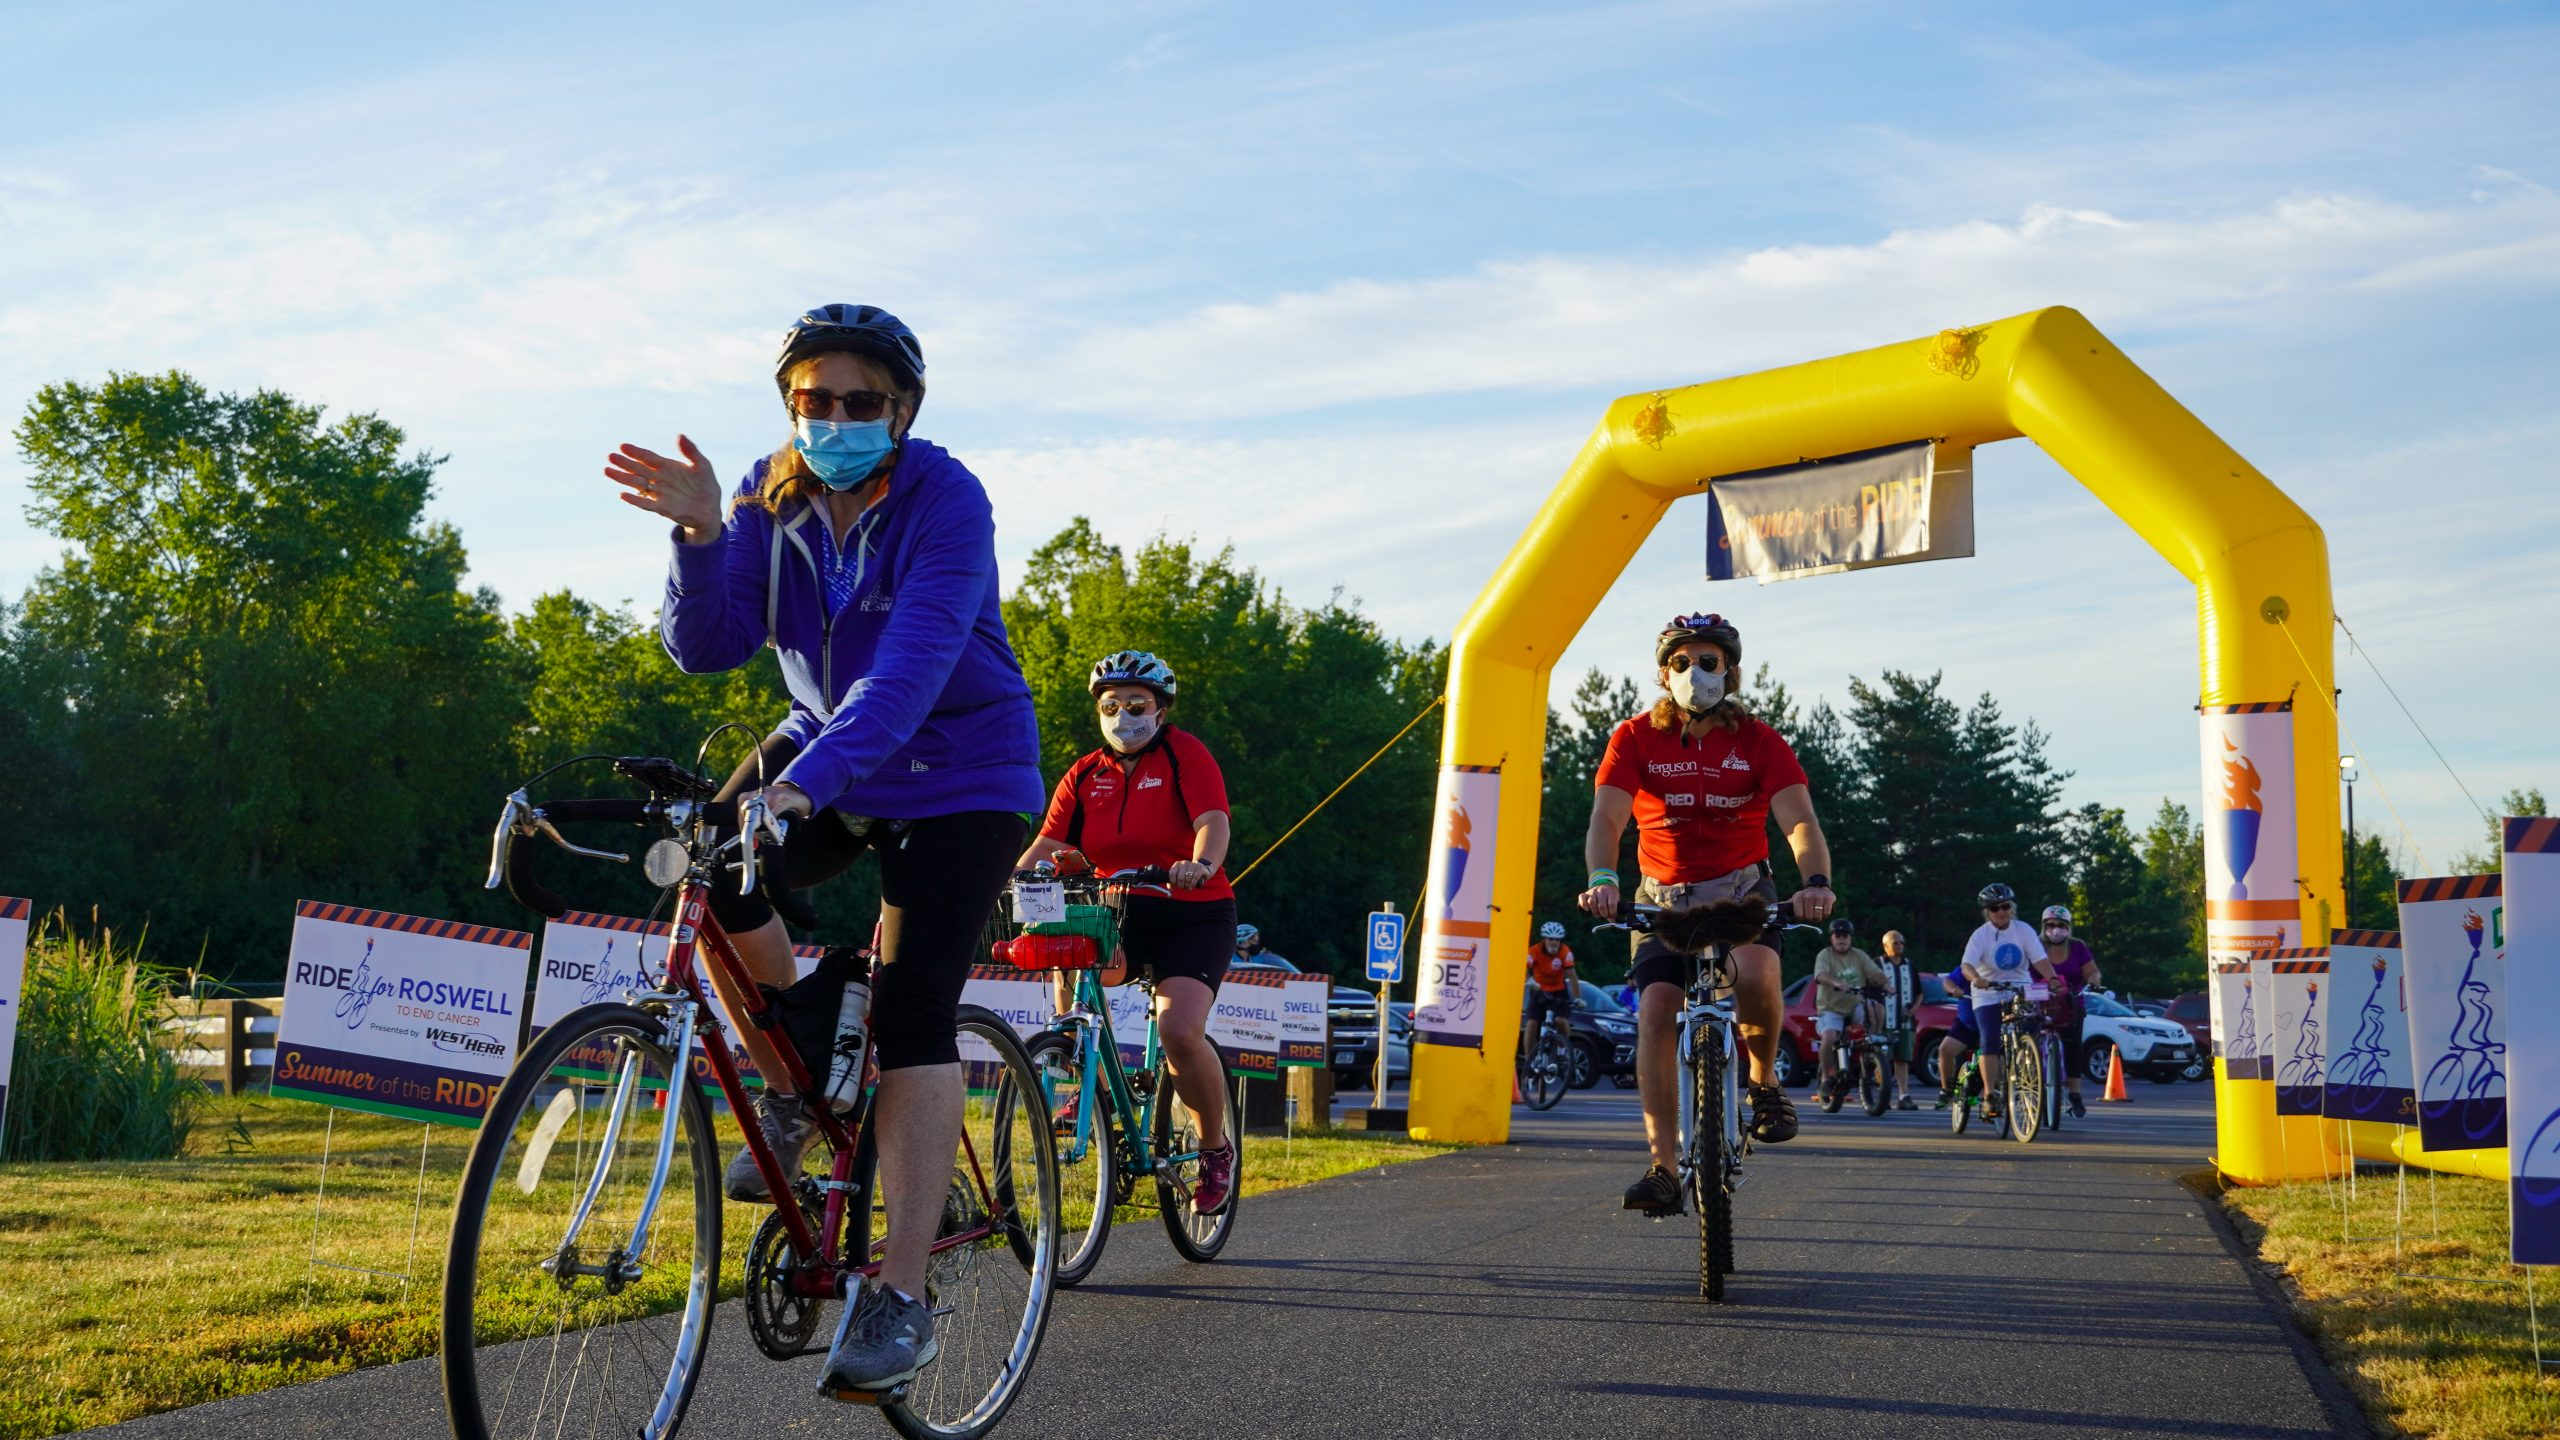 Ride for Roswell 2021 taking place on August 7